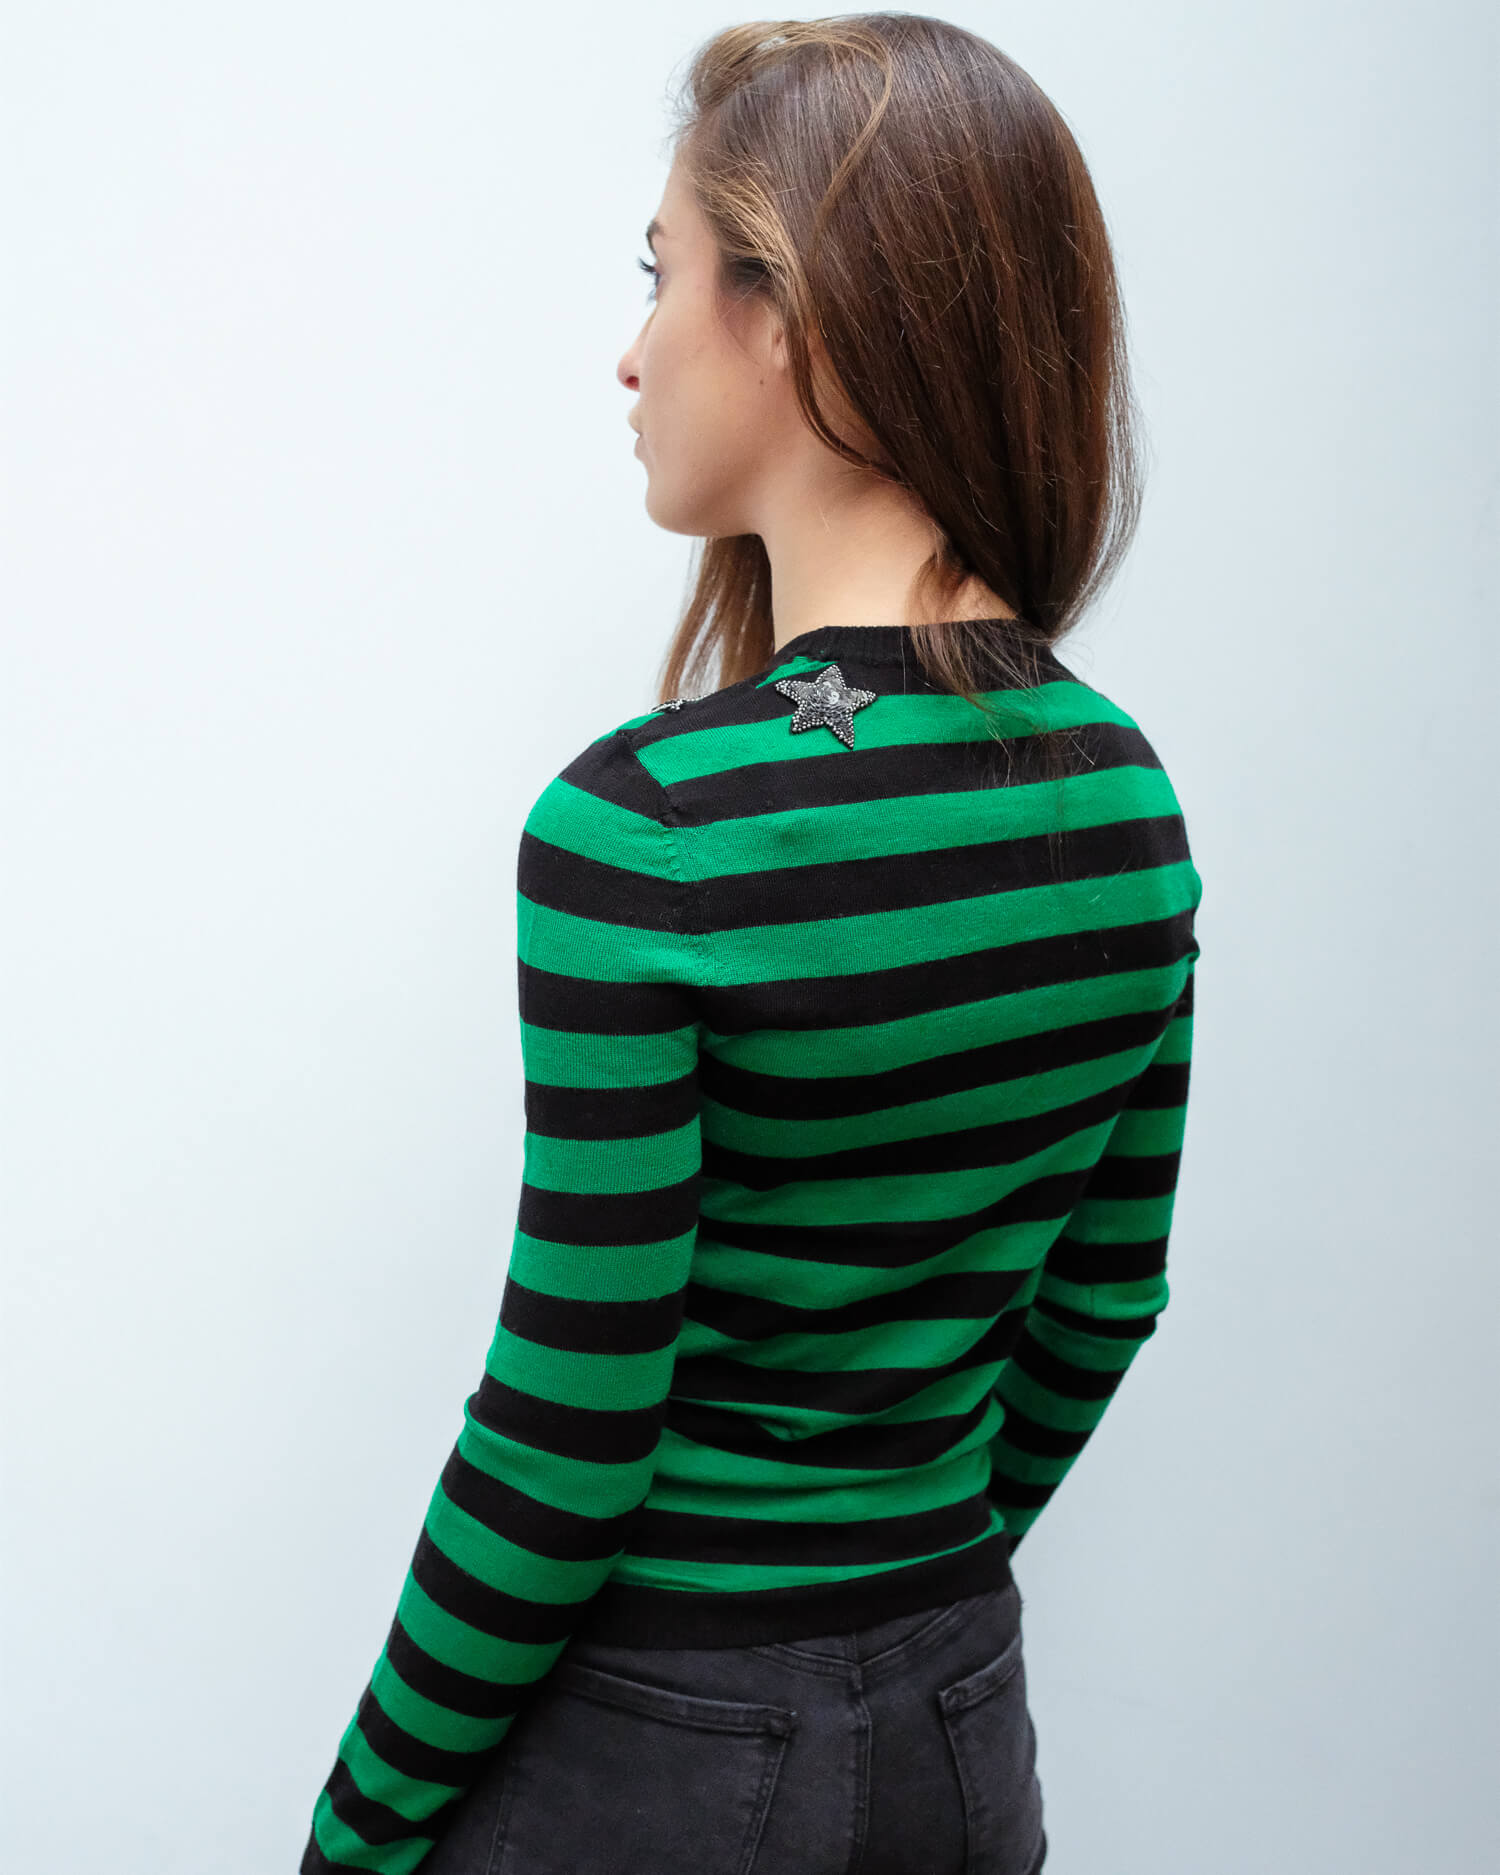 BF Mr Freedom star knit in green